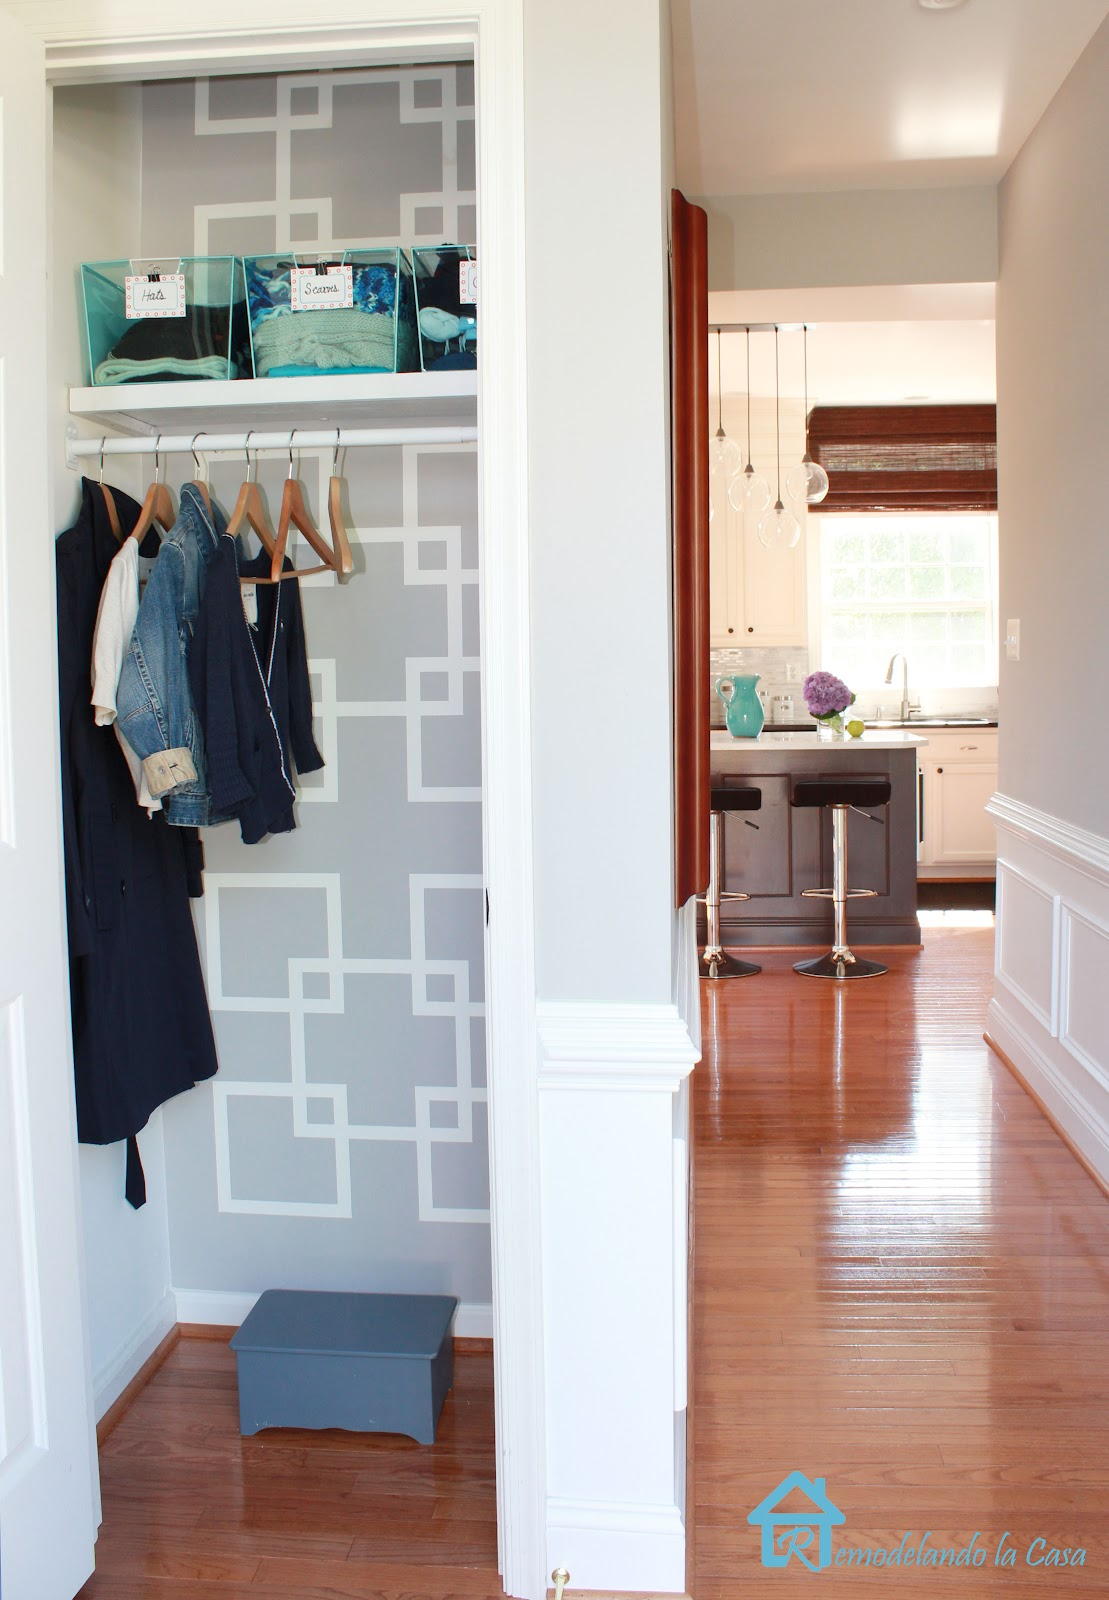 Small Closet Makeover With Geometric Design On Wall  Kitchen In The Back